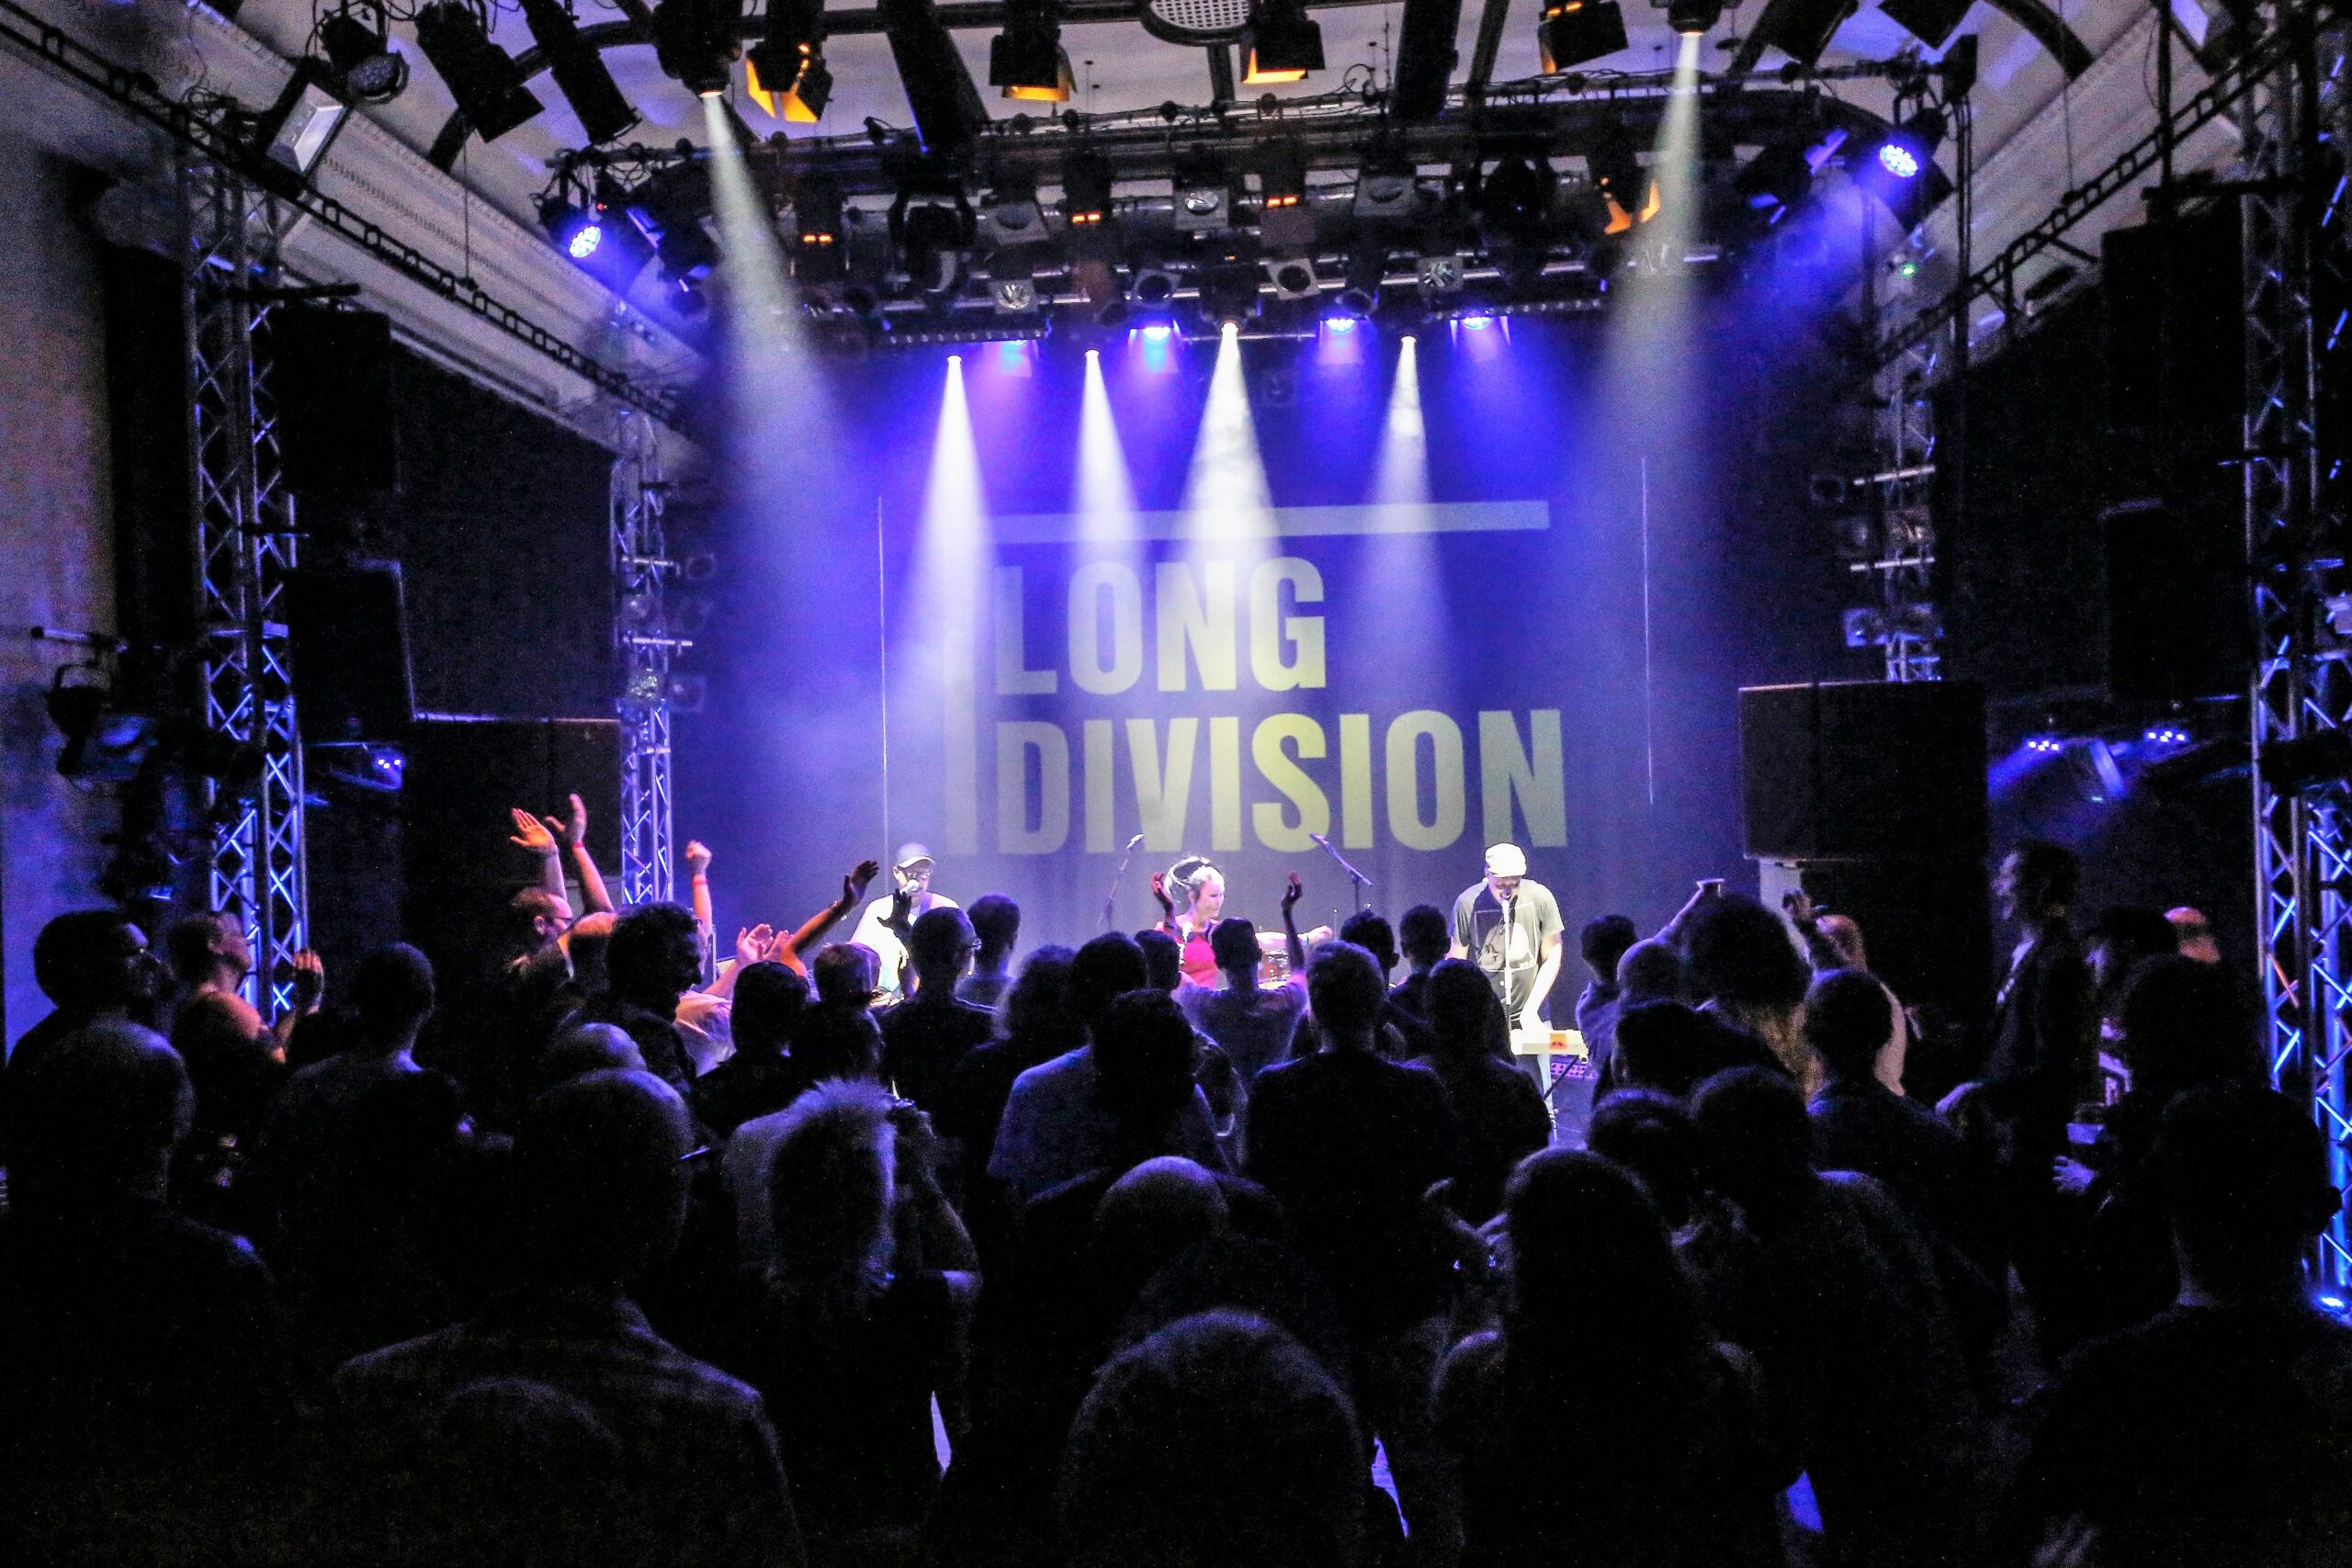 NEWS: Long Division Festival shares update on this year's event